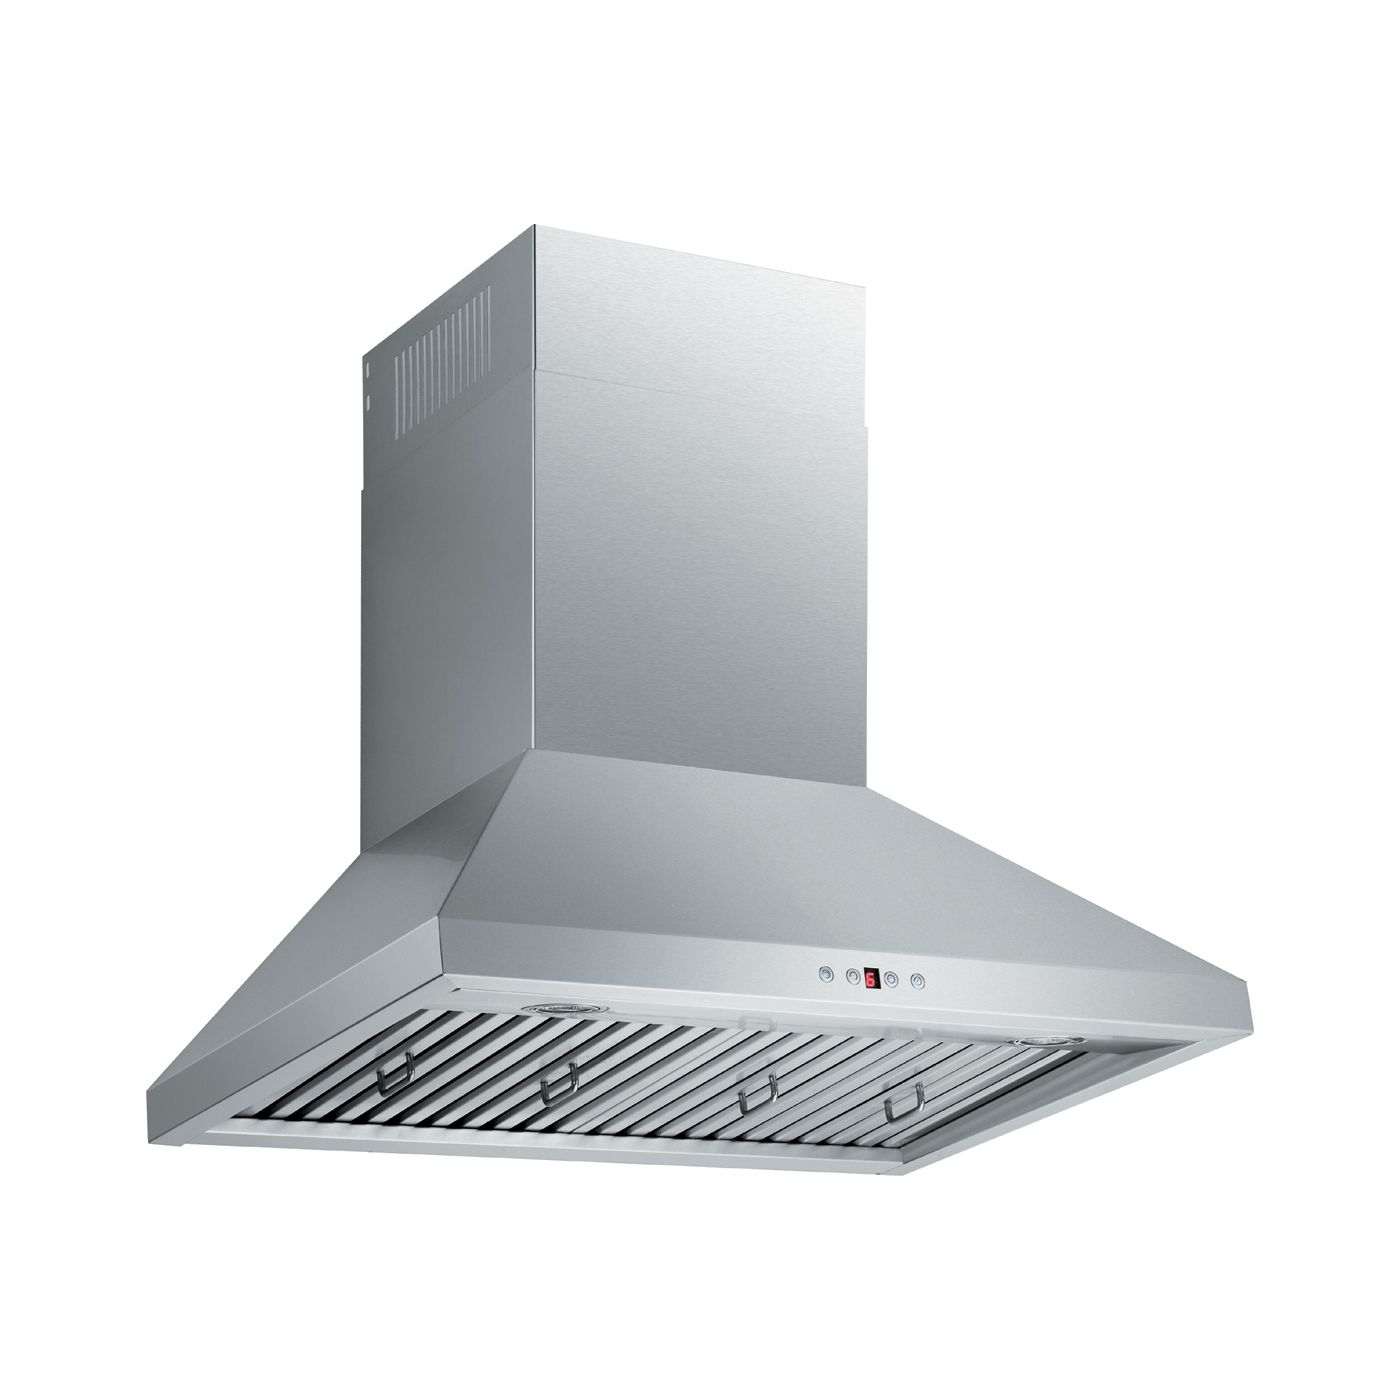 Lowes Kitchen Hood Ideas Pictures Shop Maxair Mxr B01 30 Wall Mounted Range At Lowe S Canada Find Our Selection Of Mount Hoods The Lowest Price Guaranteed With